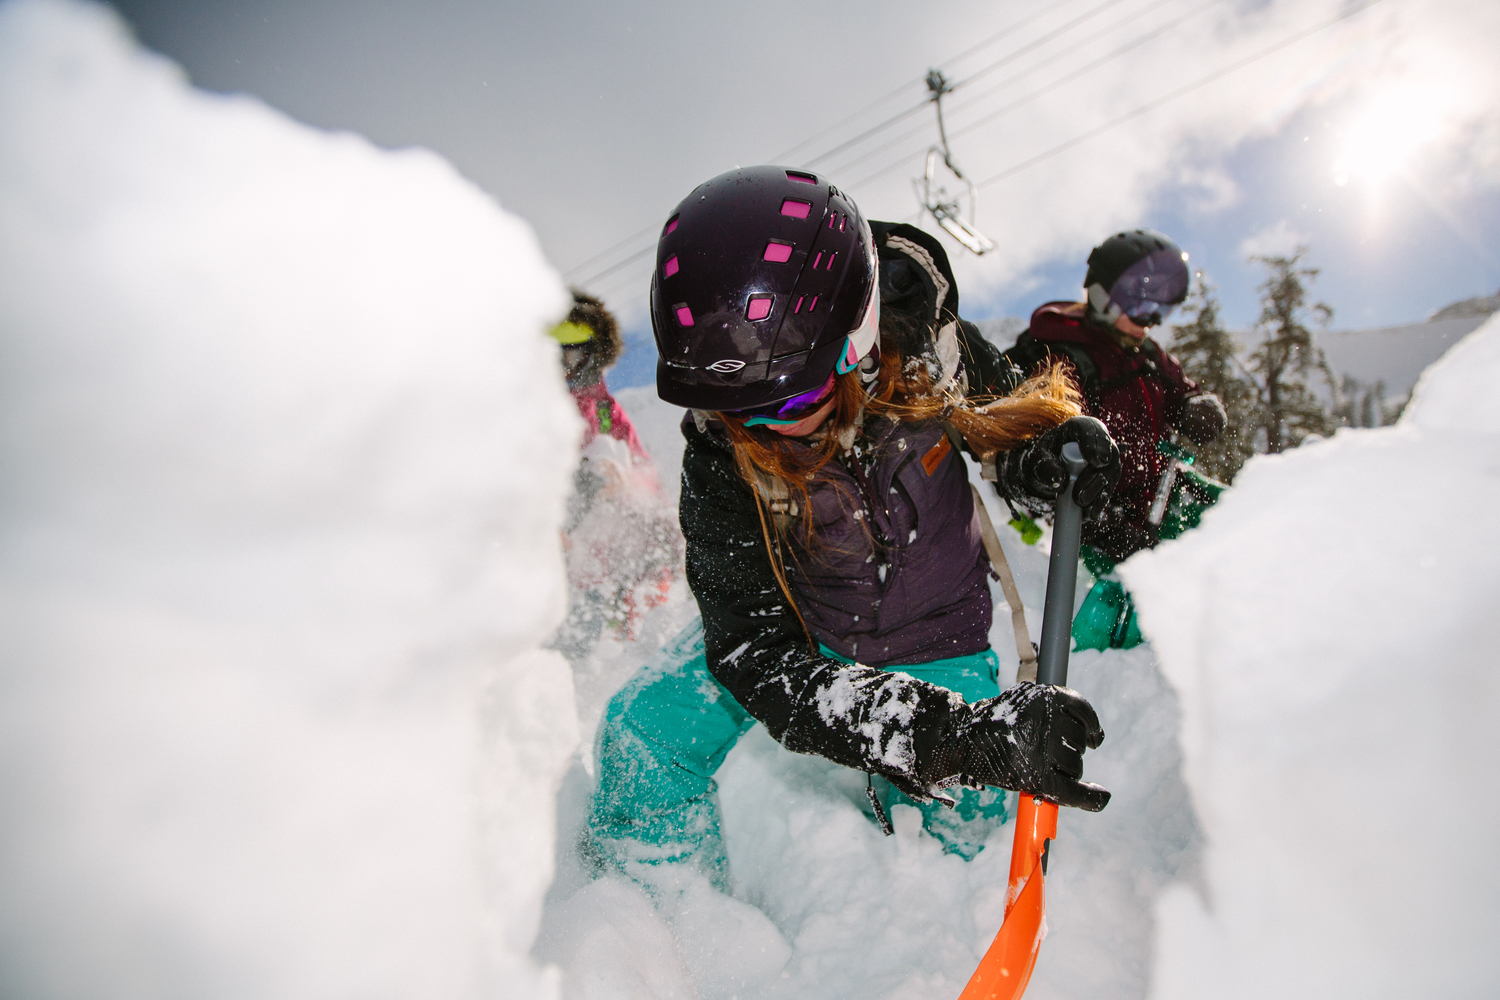 Take A Mountain Safety Course New Year Resolutions for Girl Skiers and Snowboarders